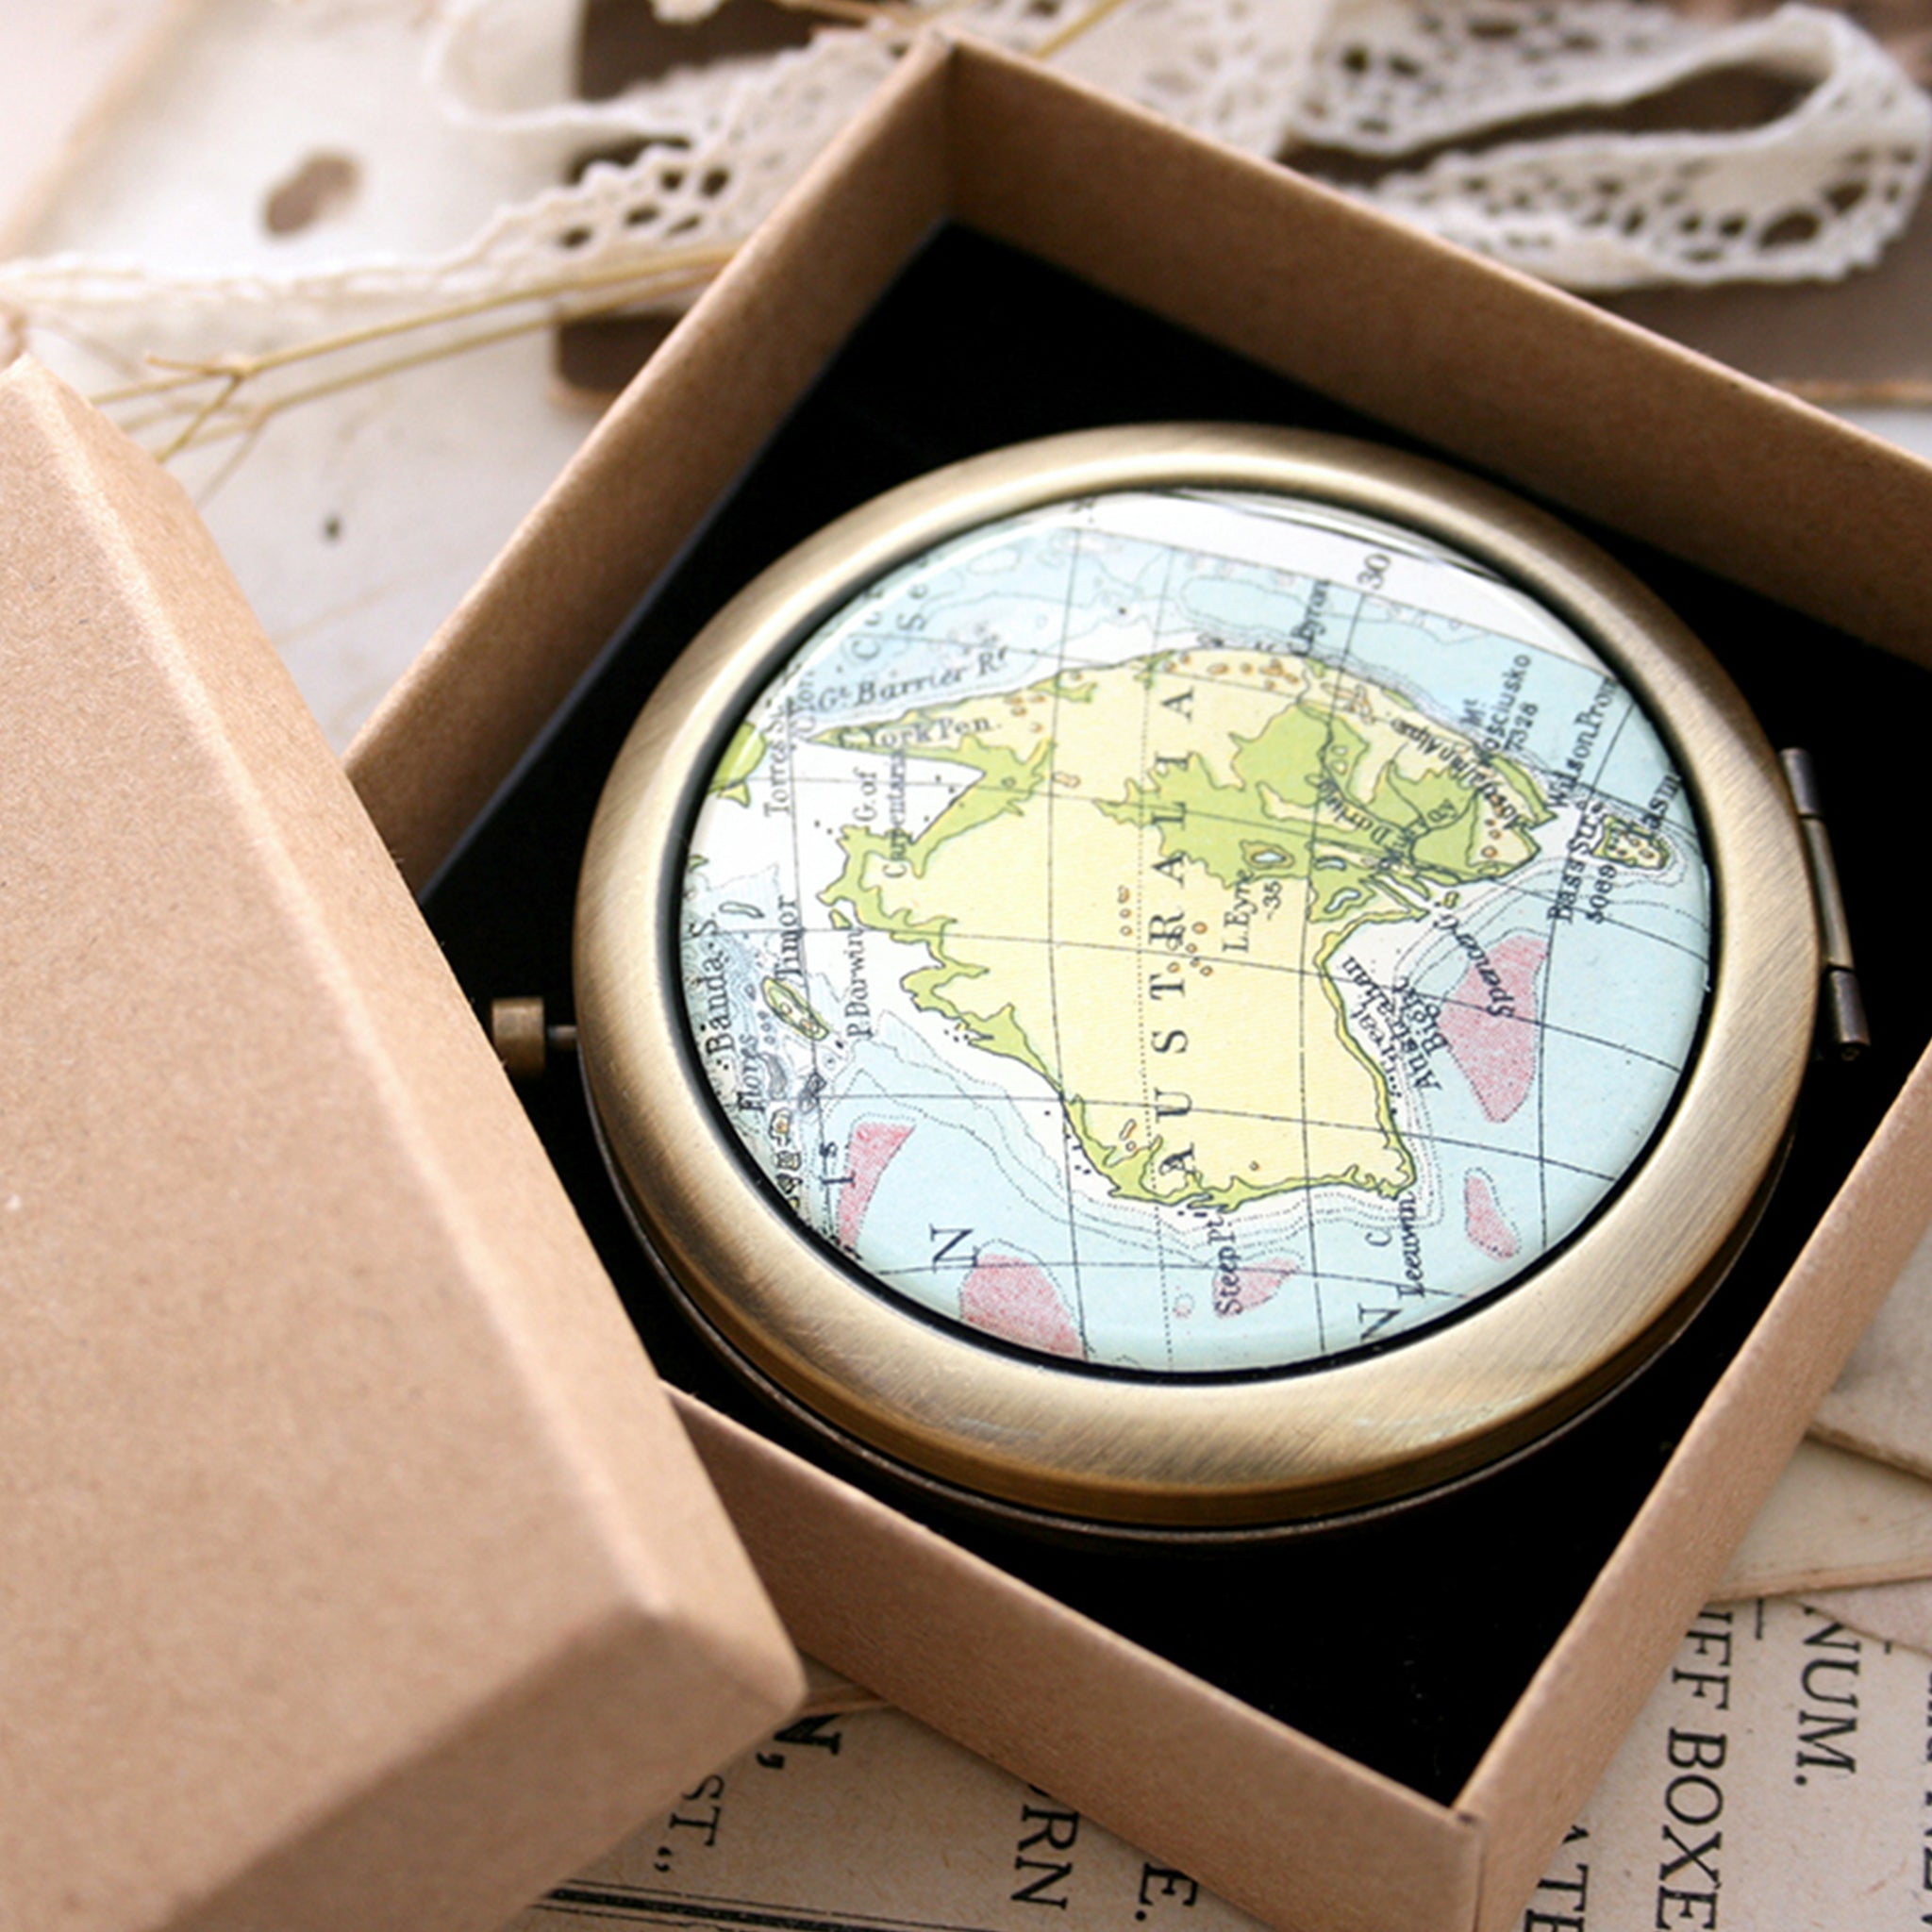 Personalised Compact Mirror in Antique Bronze color featuring map of Australia in presentation box